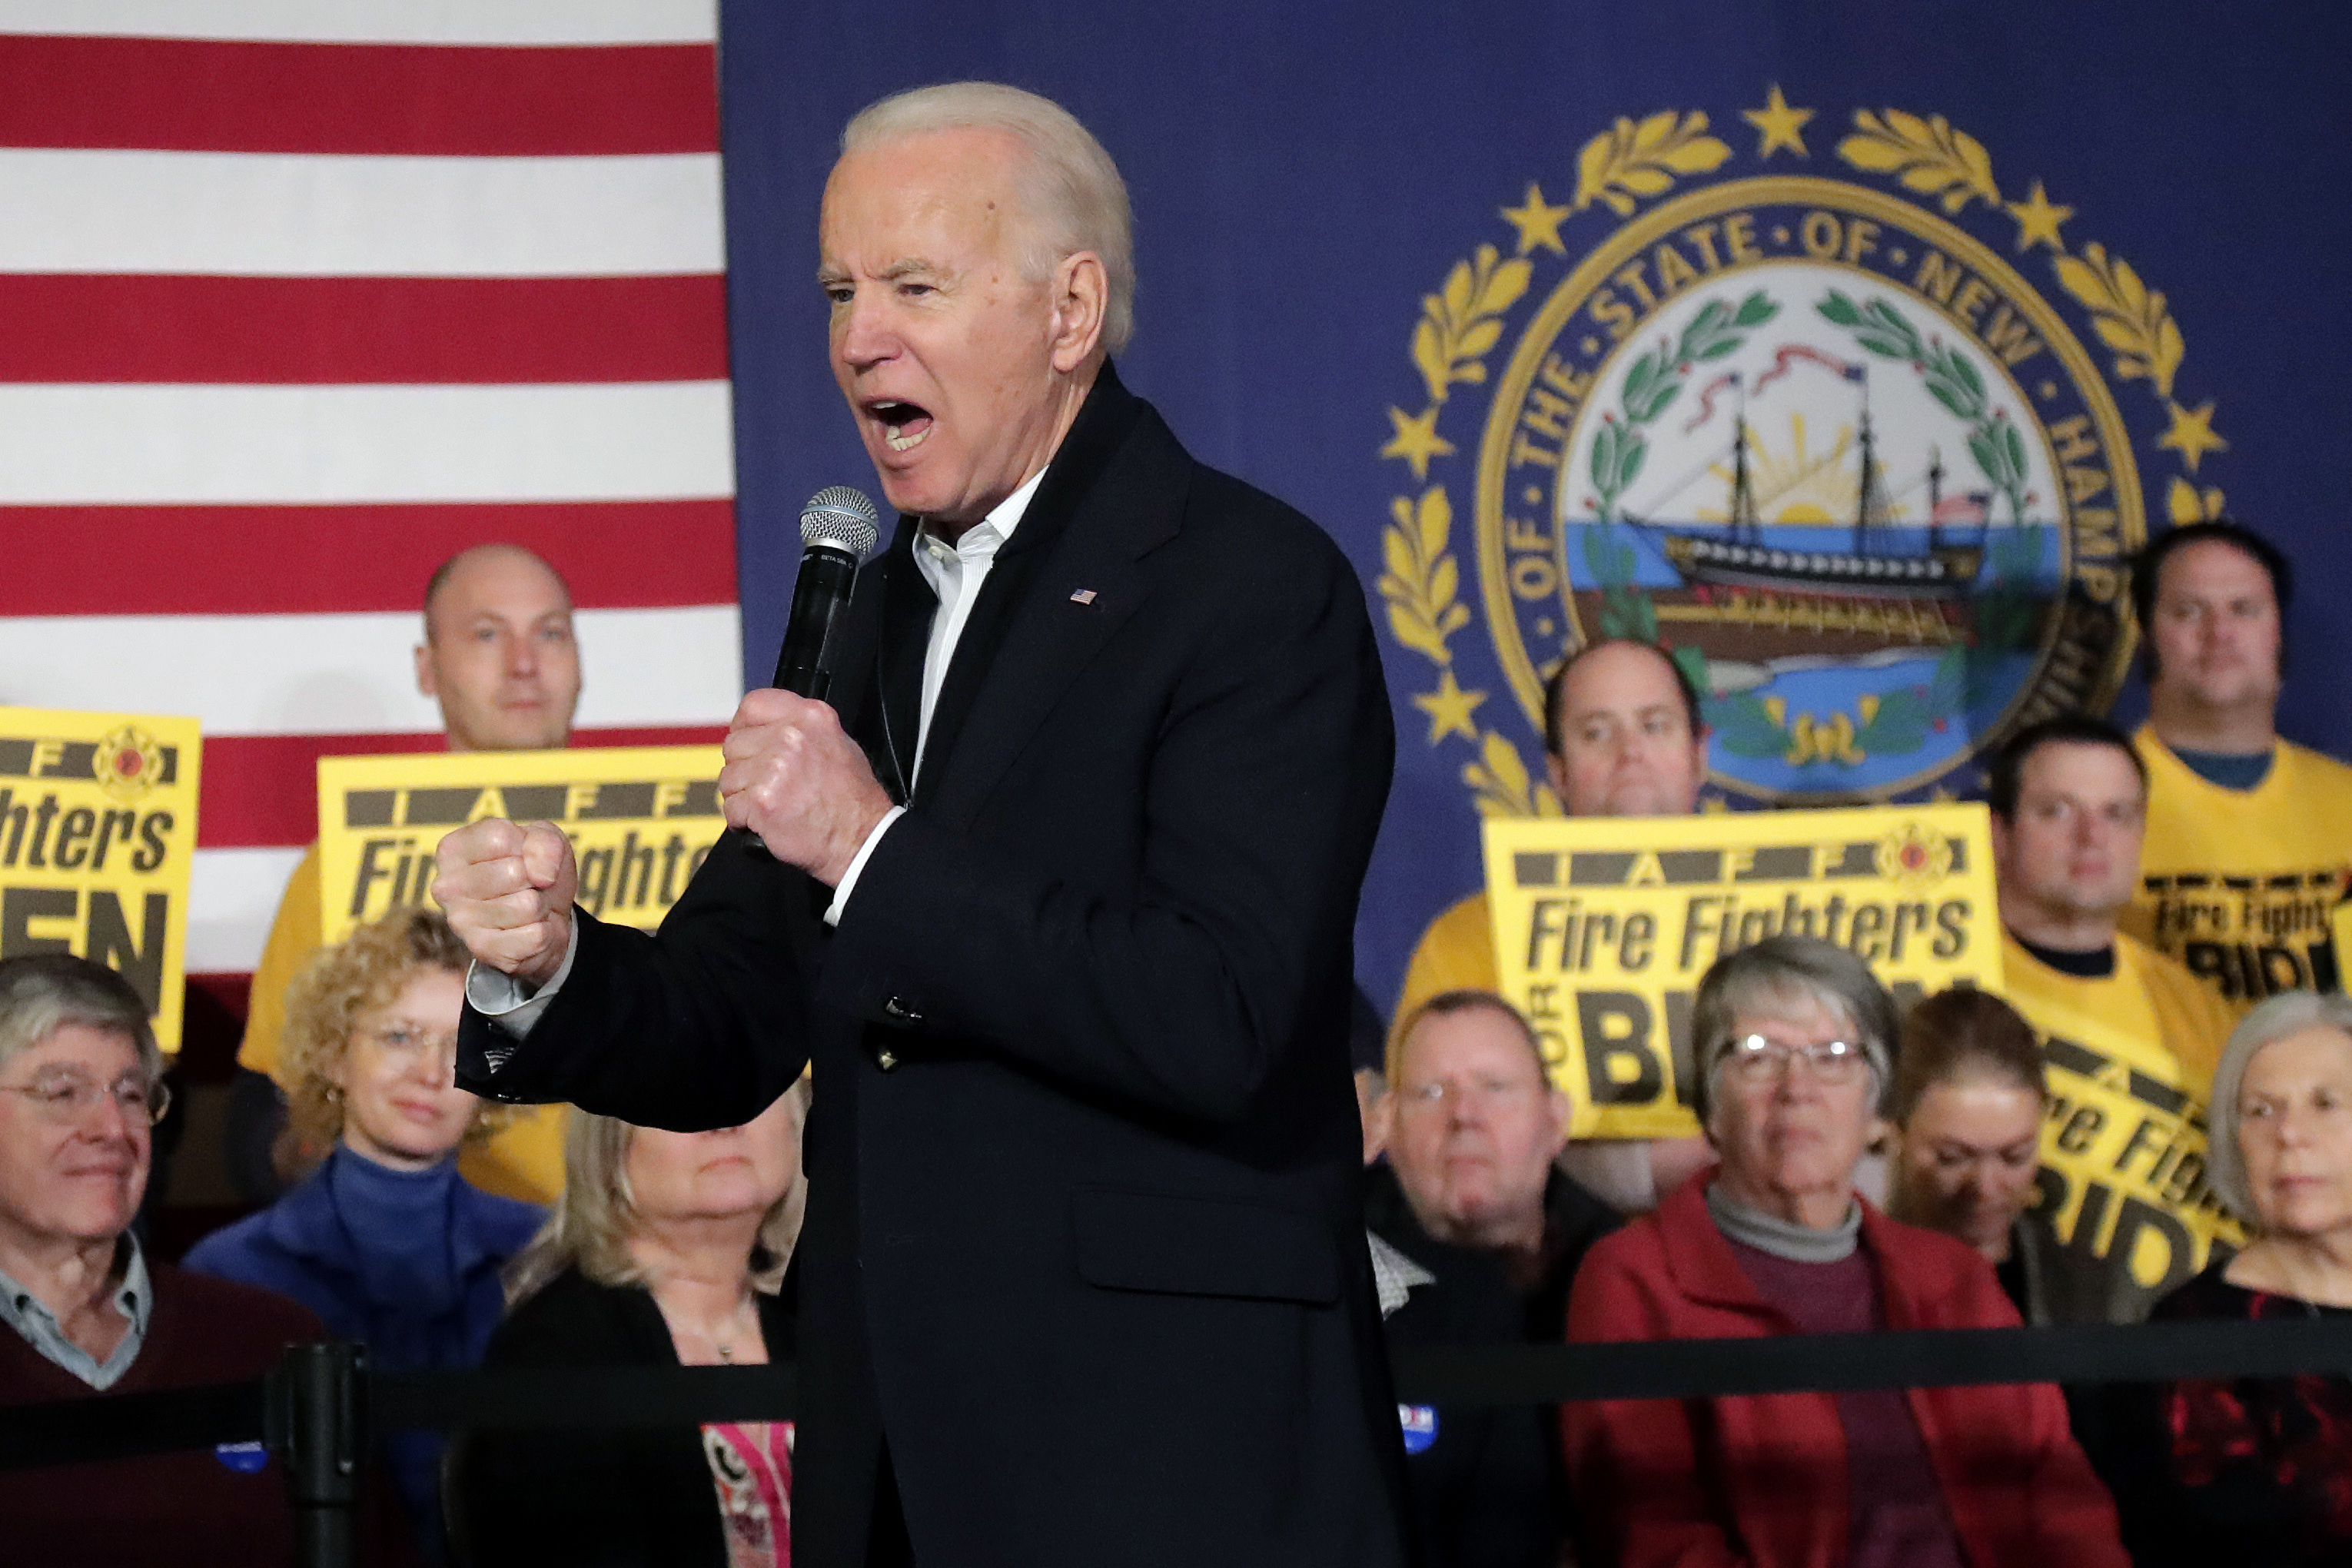 Democratic presidential candidate former Vice President Joe Biden clenches his fist as he speaks at a campaign event, Wednesday, Feb. 5, 2020, in Somersworth, N.H. (Elise Amendola/AP)